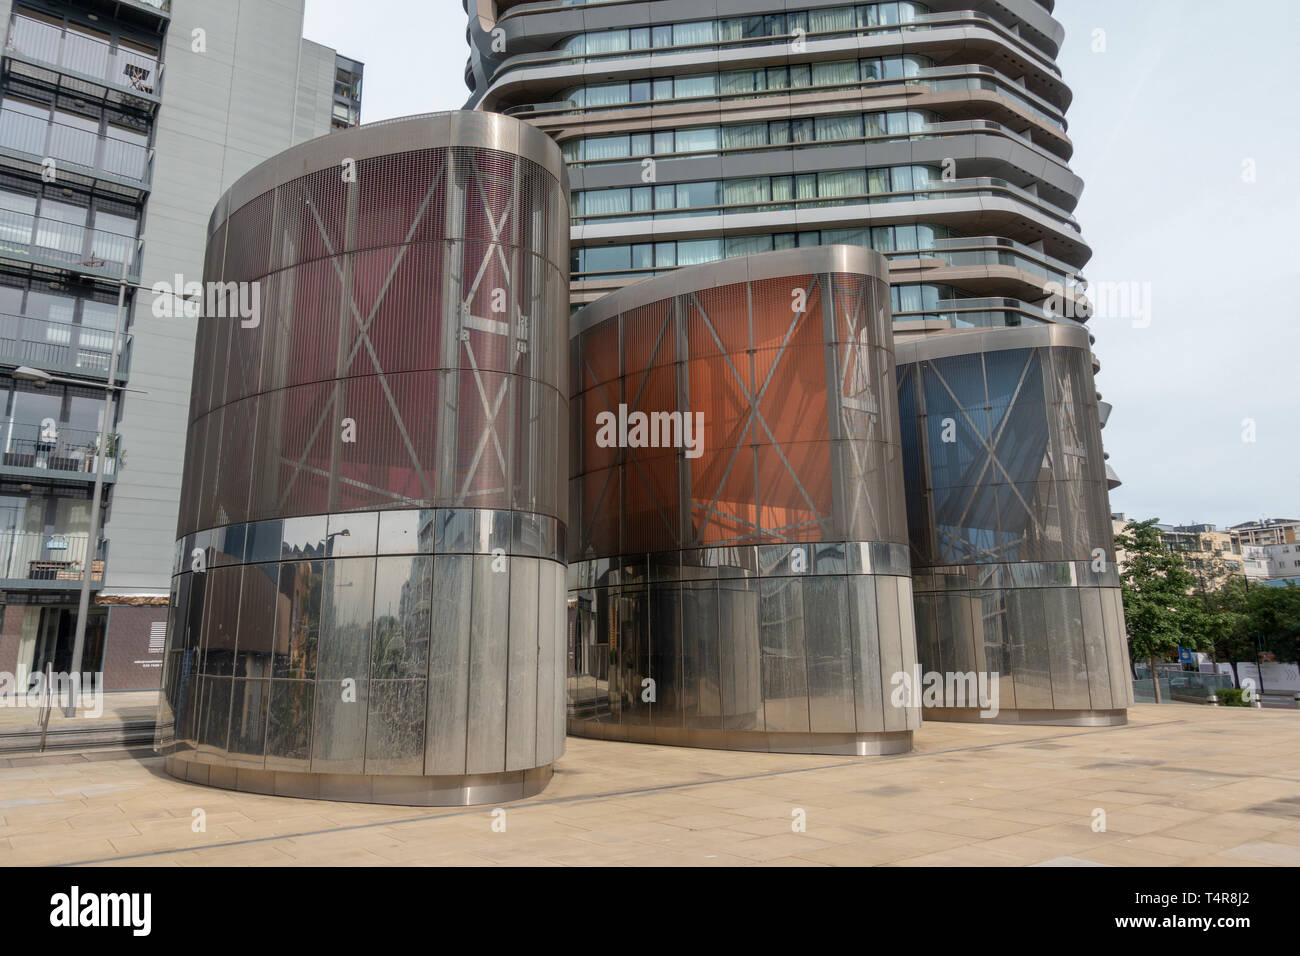 Ventilation towers beside Canaletto Tower, part of the Bunhill Heat and Power heating network scheme by Islington Council, London, UK. (see notes) Stock Photo